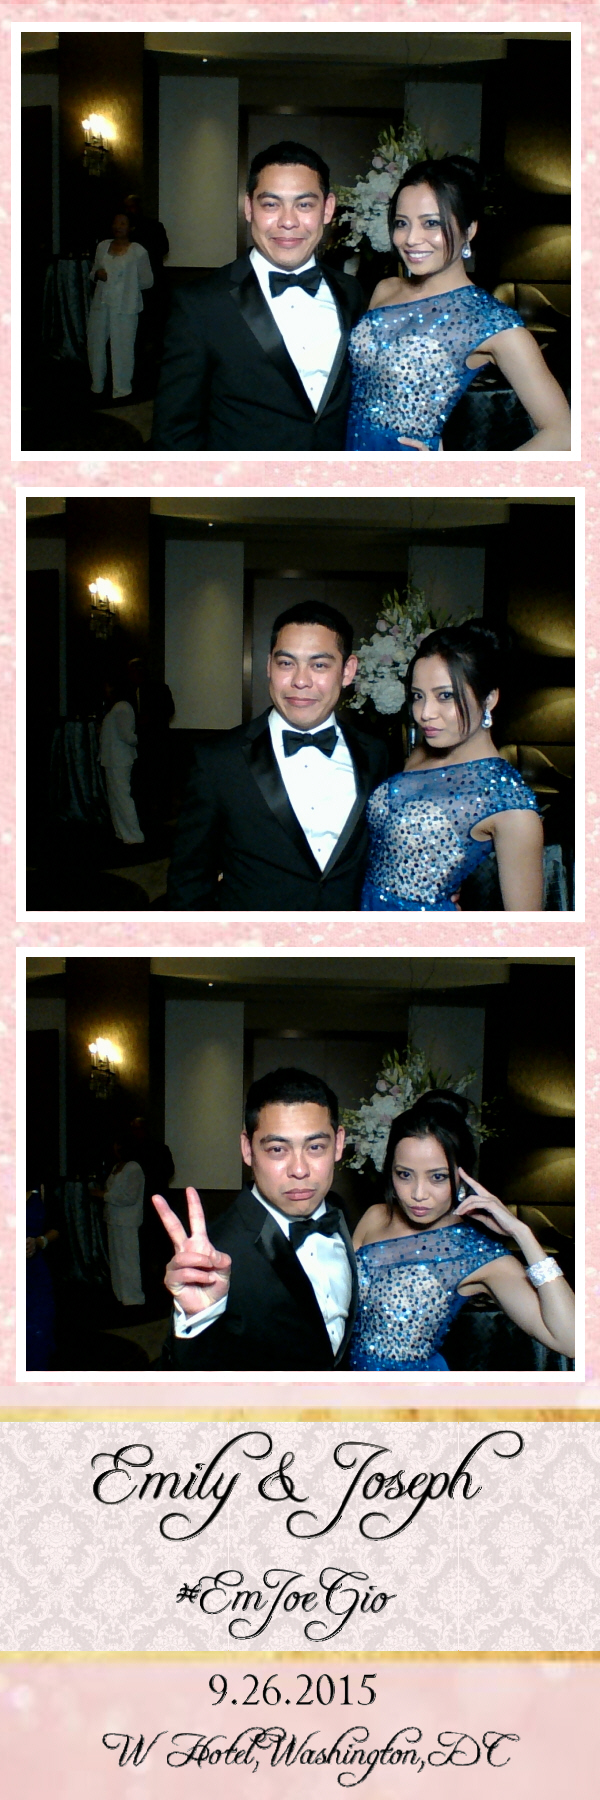 Guest House Events Photo Booth E&J (42).jpg